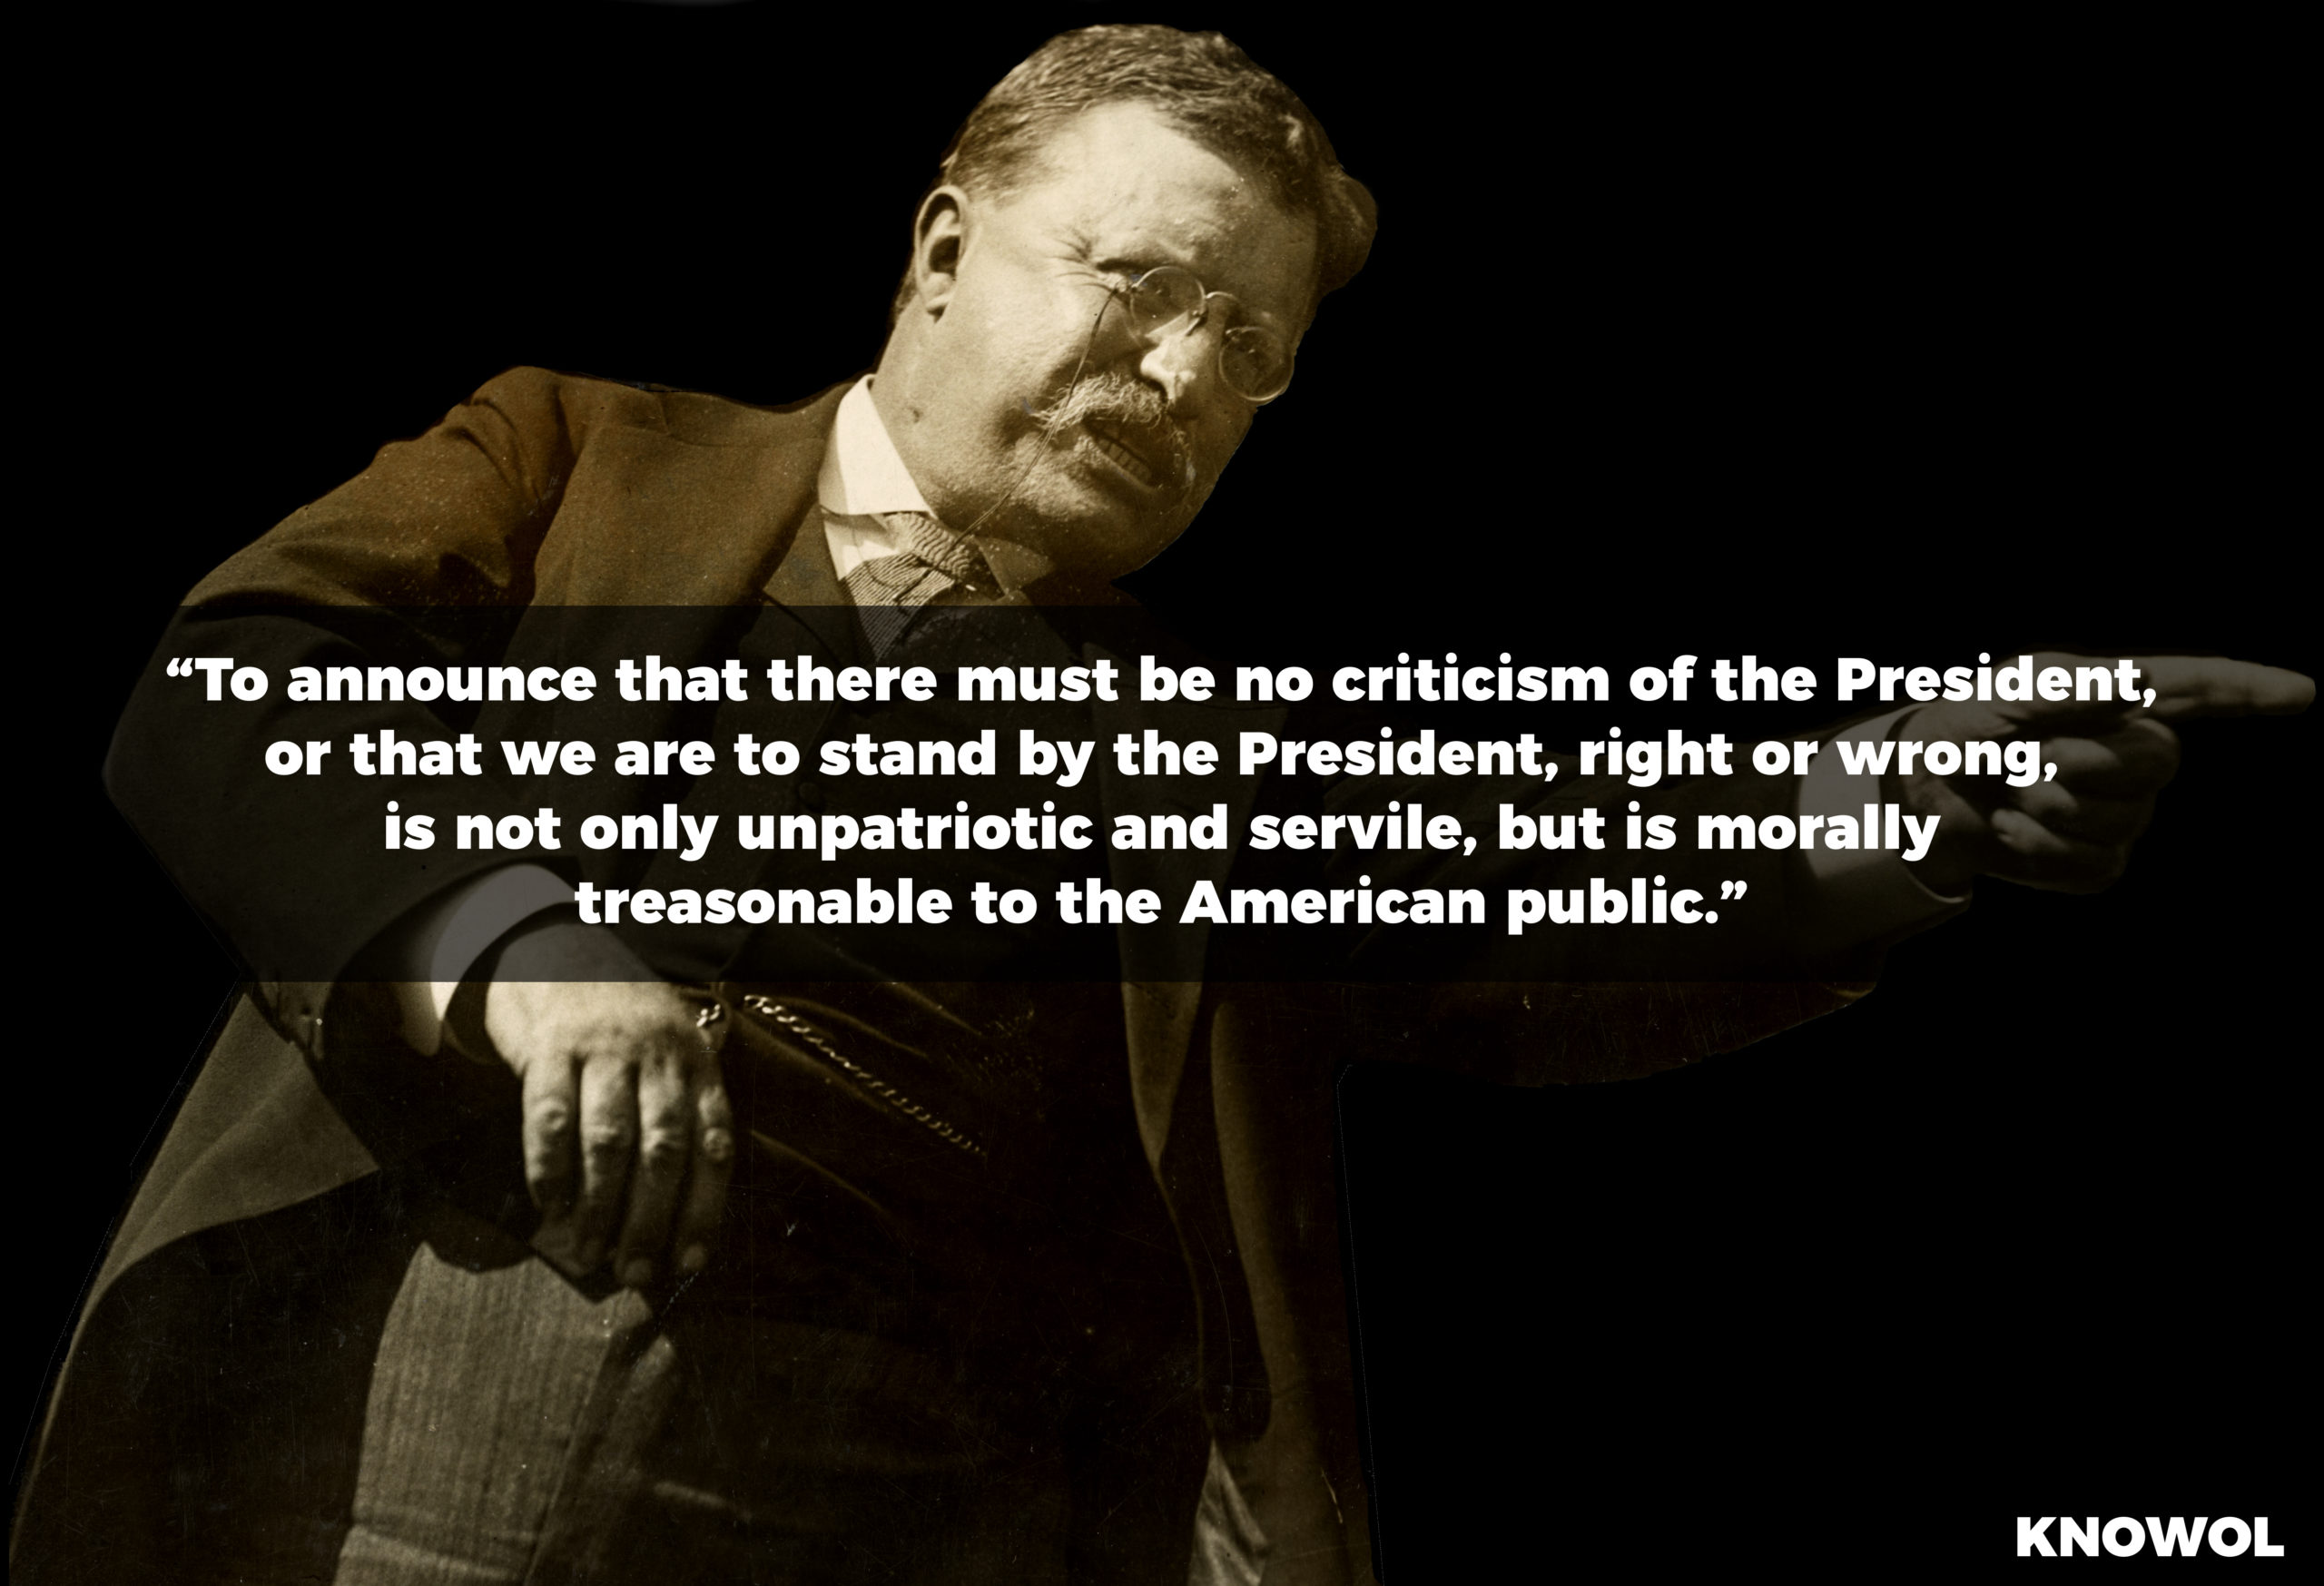 Teddy Roosevelt Quote Theodore Roosevelt Discusses Criticism Of The President  Knowol